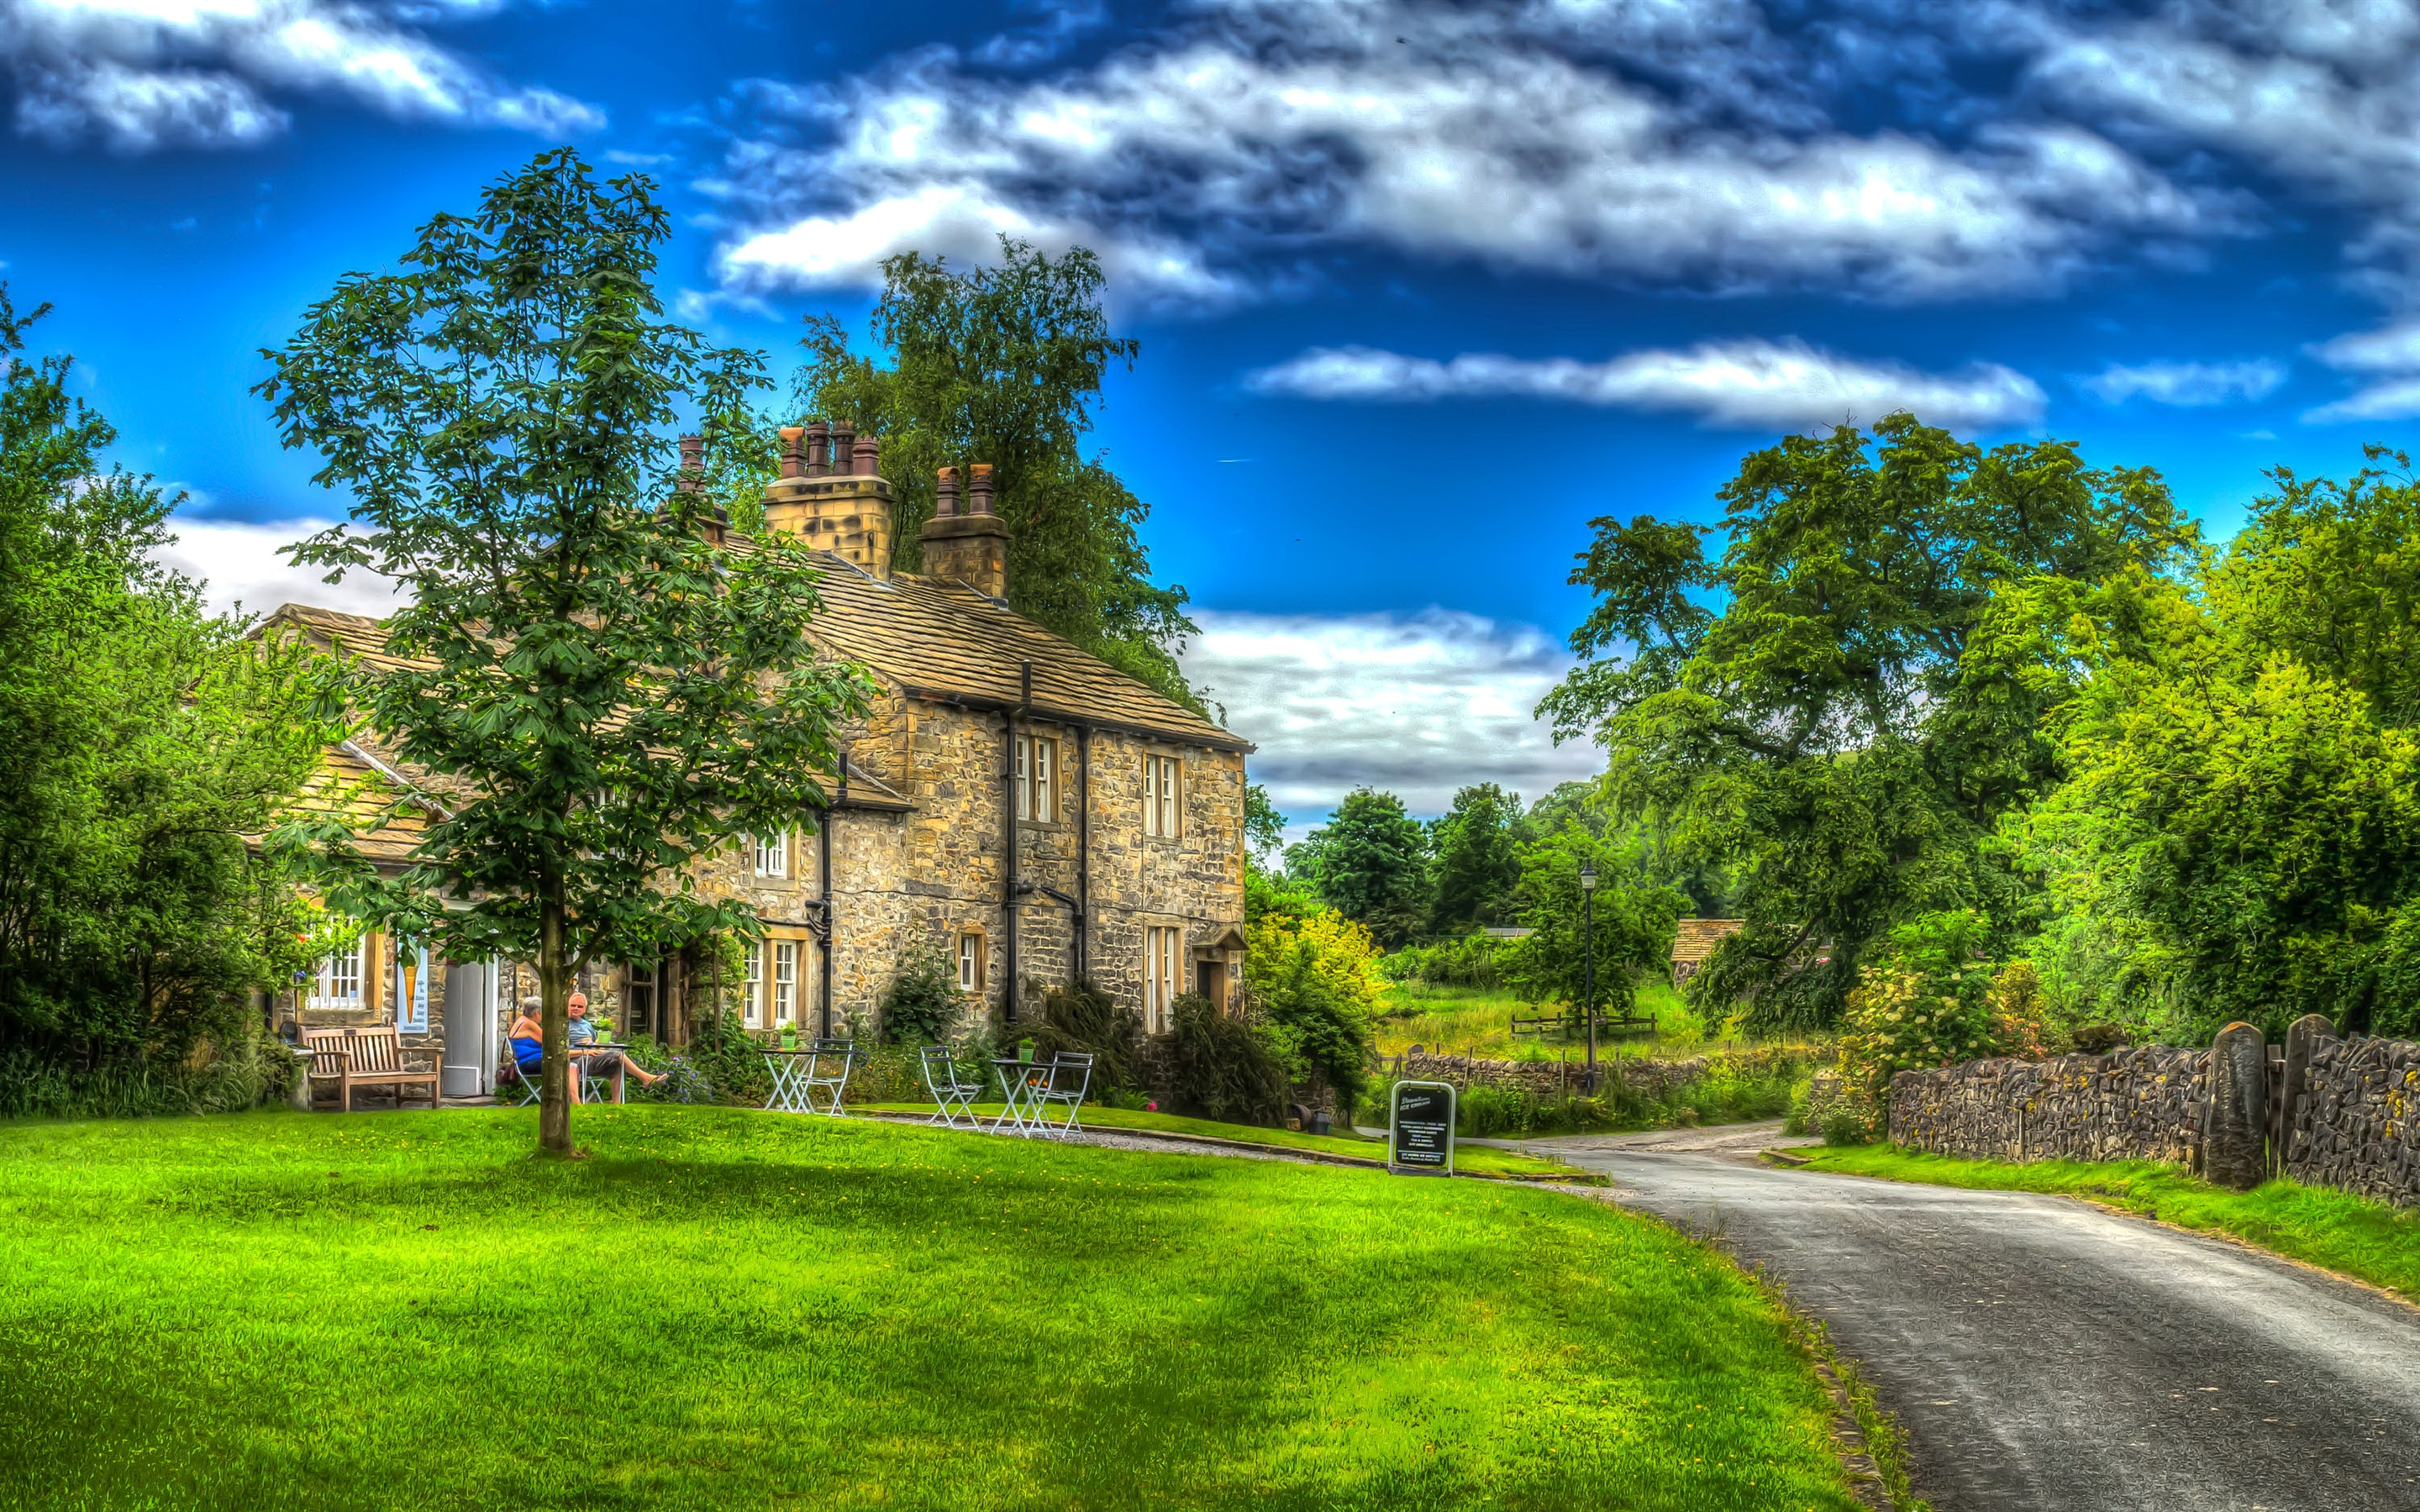 Wallpaper england downham house trees meadow 2880x1800 for Meadow house